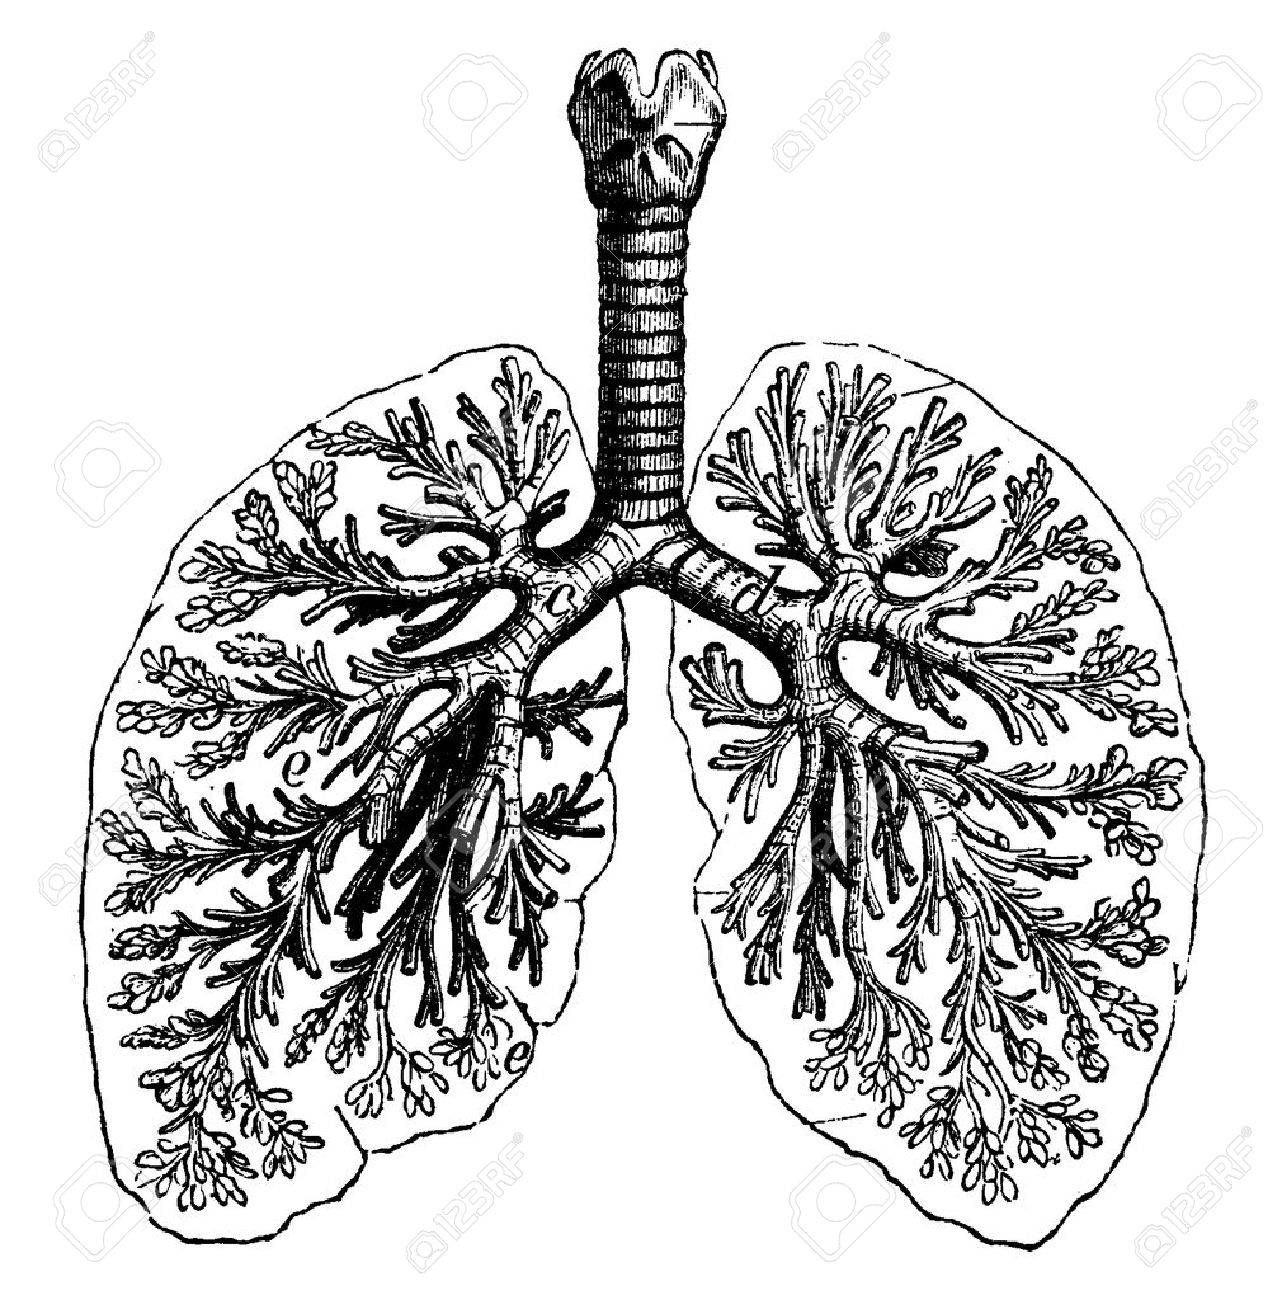 Lungs Drawing At Getdrawings